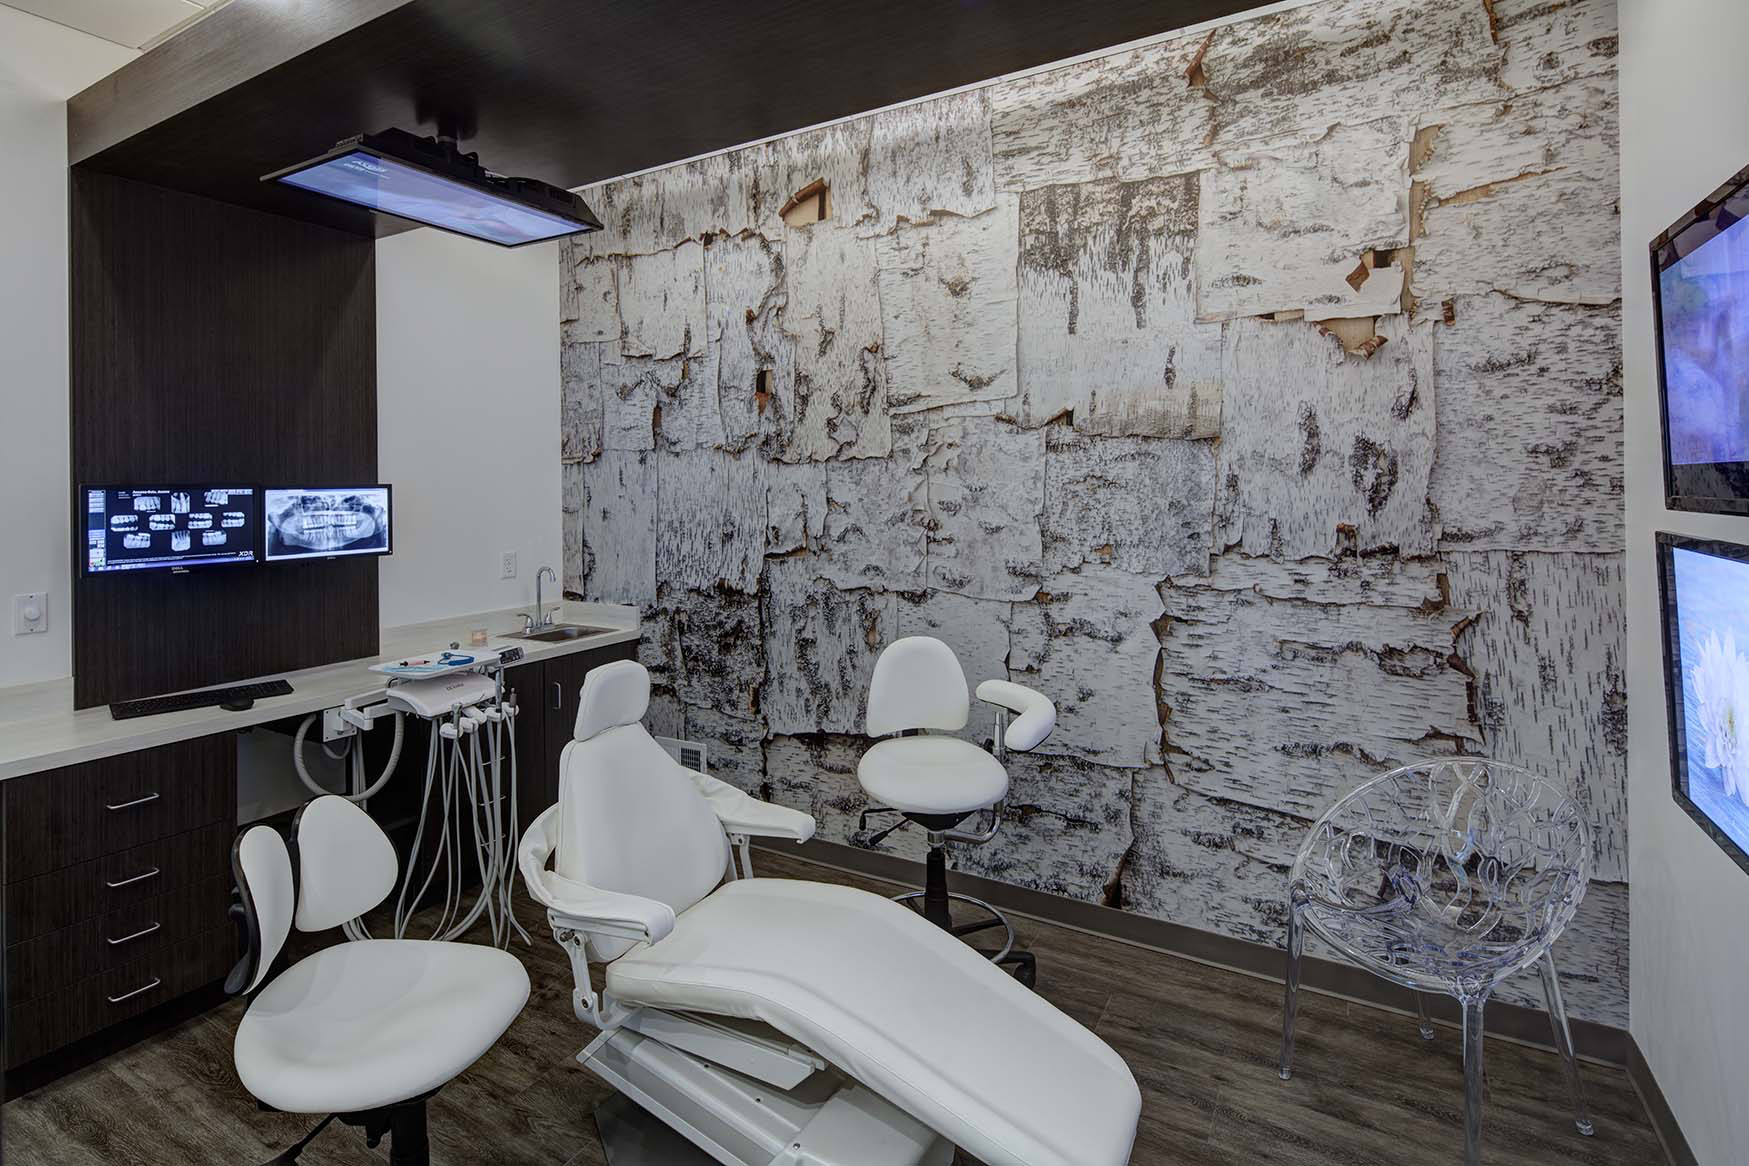 This birch wall mural creates a calm and comforting space in this dental office exam room.